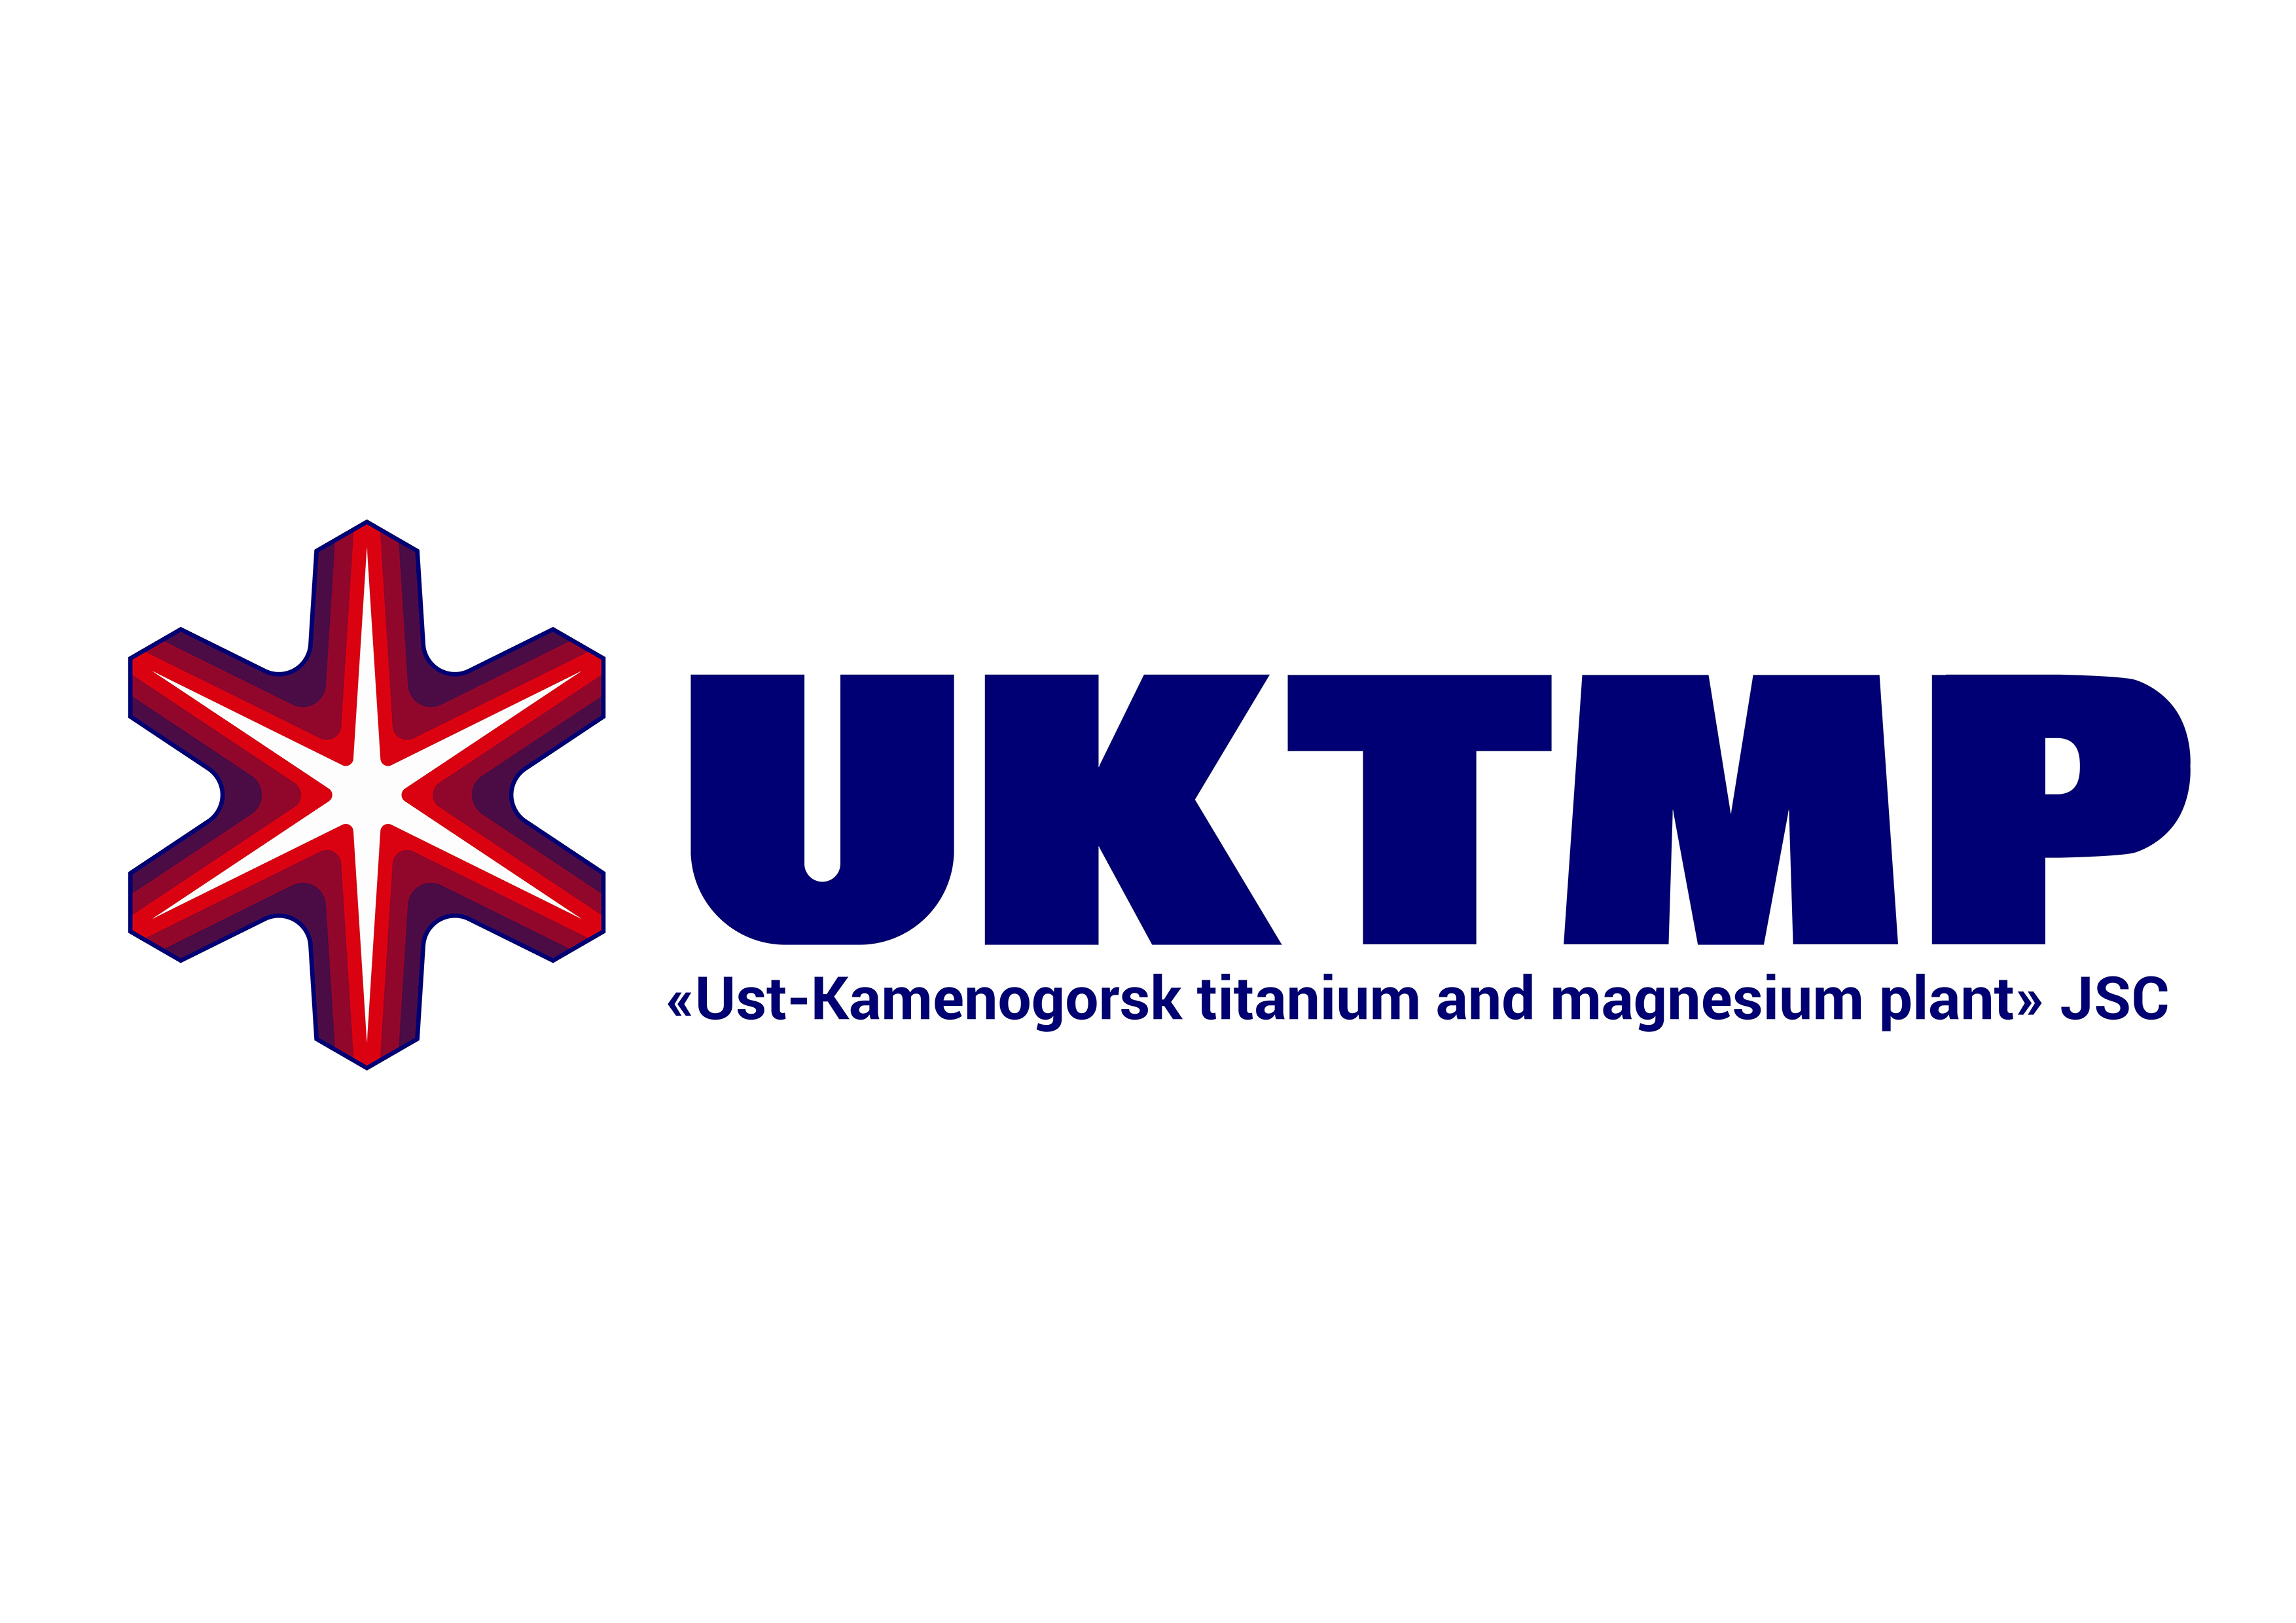 ATTENTION TO SHAREHOLDERS of Ust-Kamenogorsk Titanium and Magnesium Plant JSC!